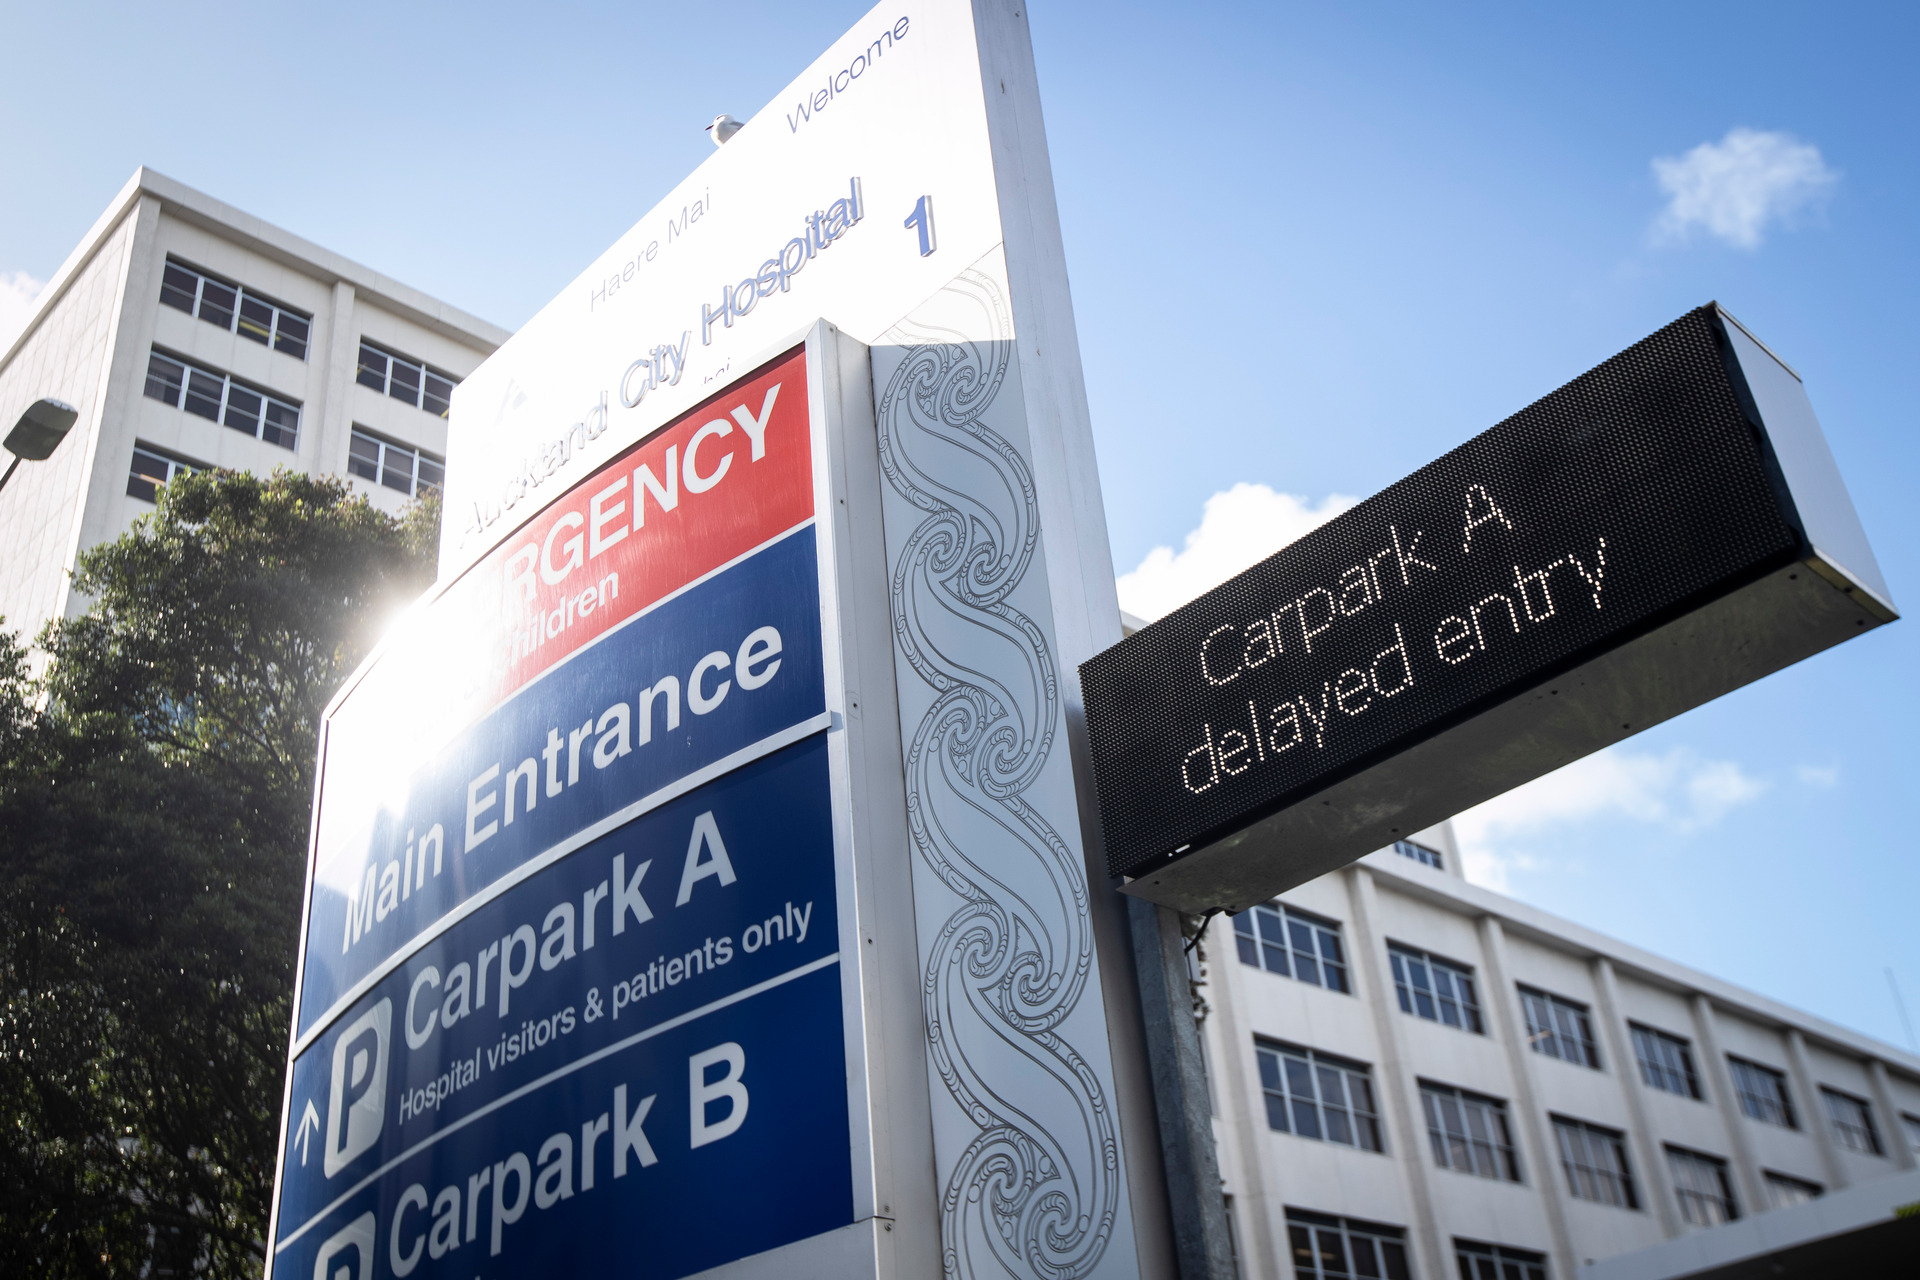 Student in isolation at Auckland Hospital after coronavirus fears